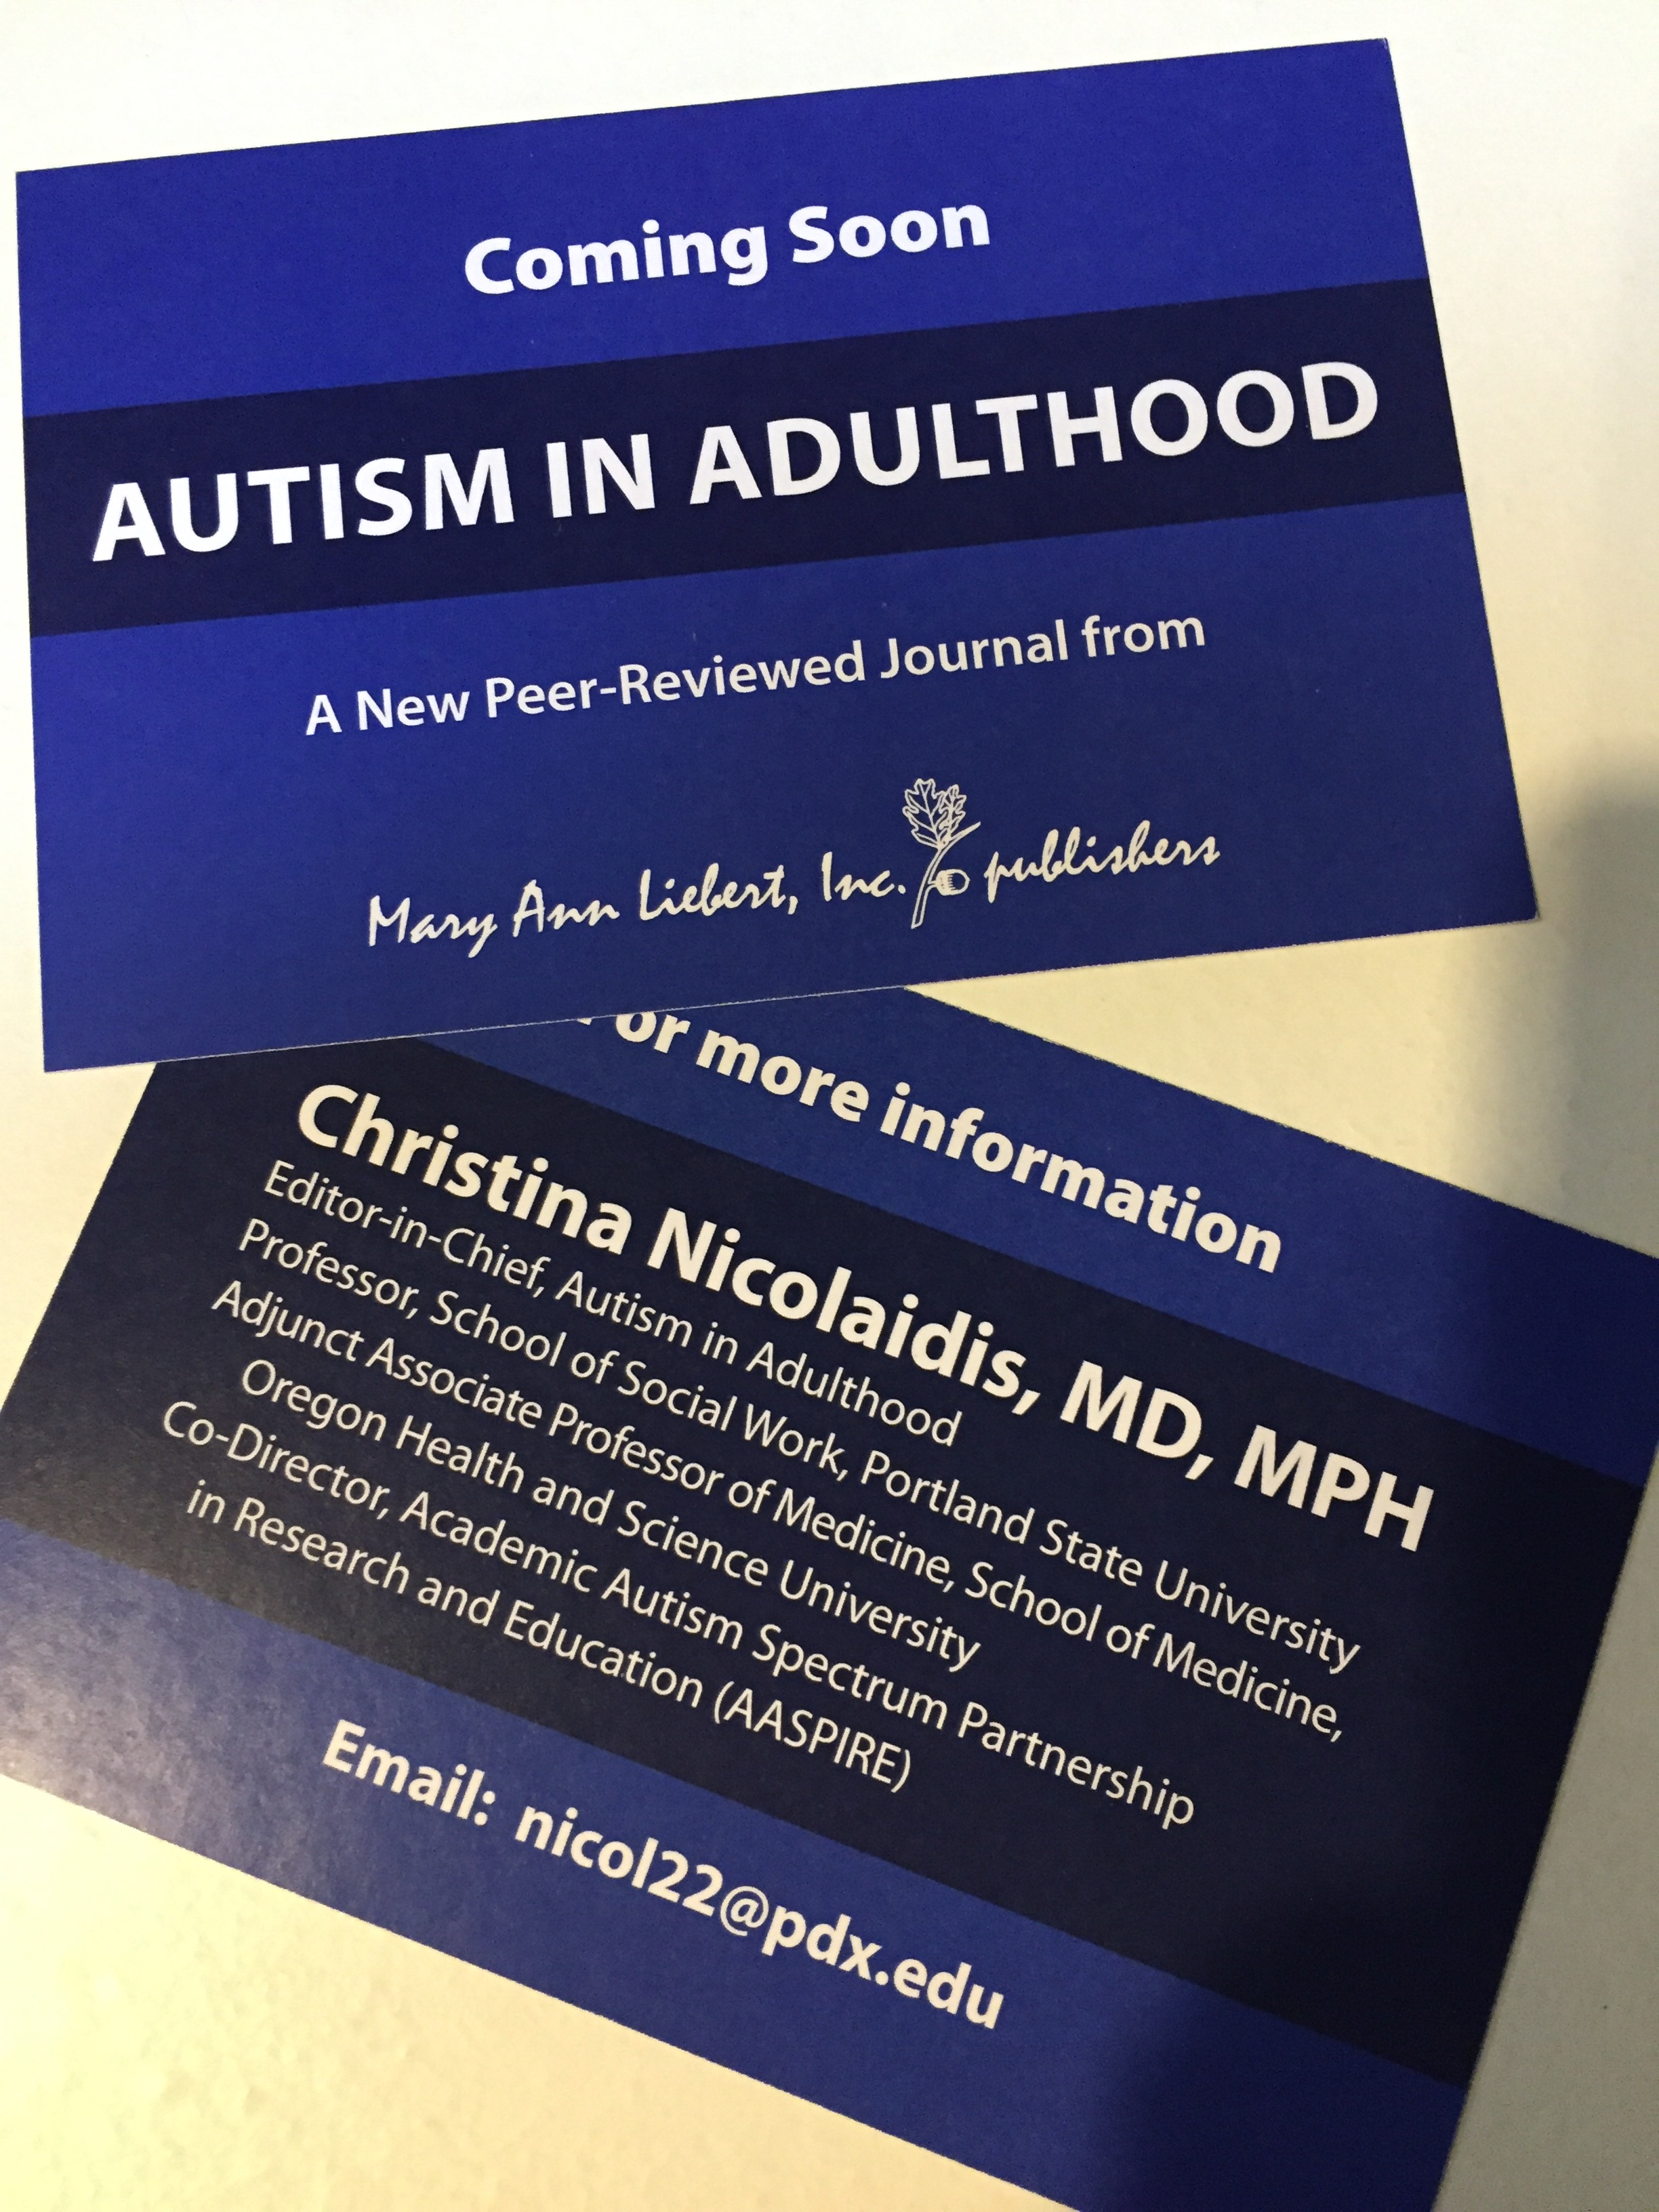 Announcing Autism in Adulthood, a New Peer-Reviewed Journal